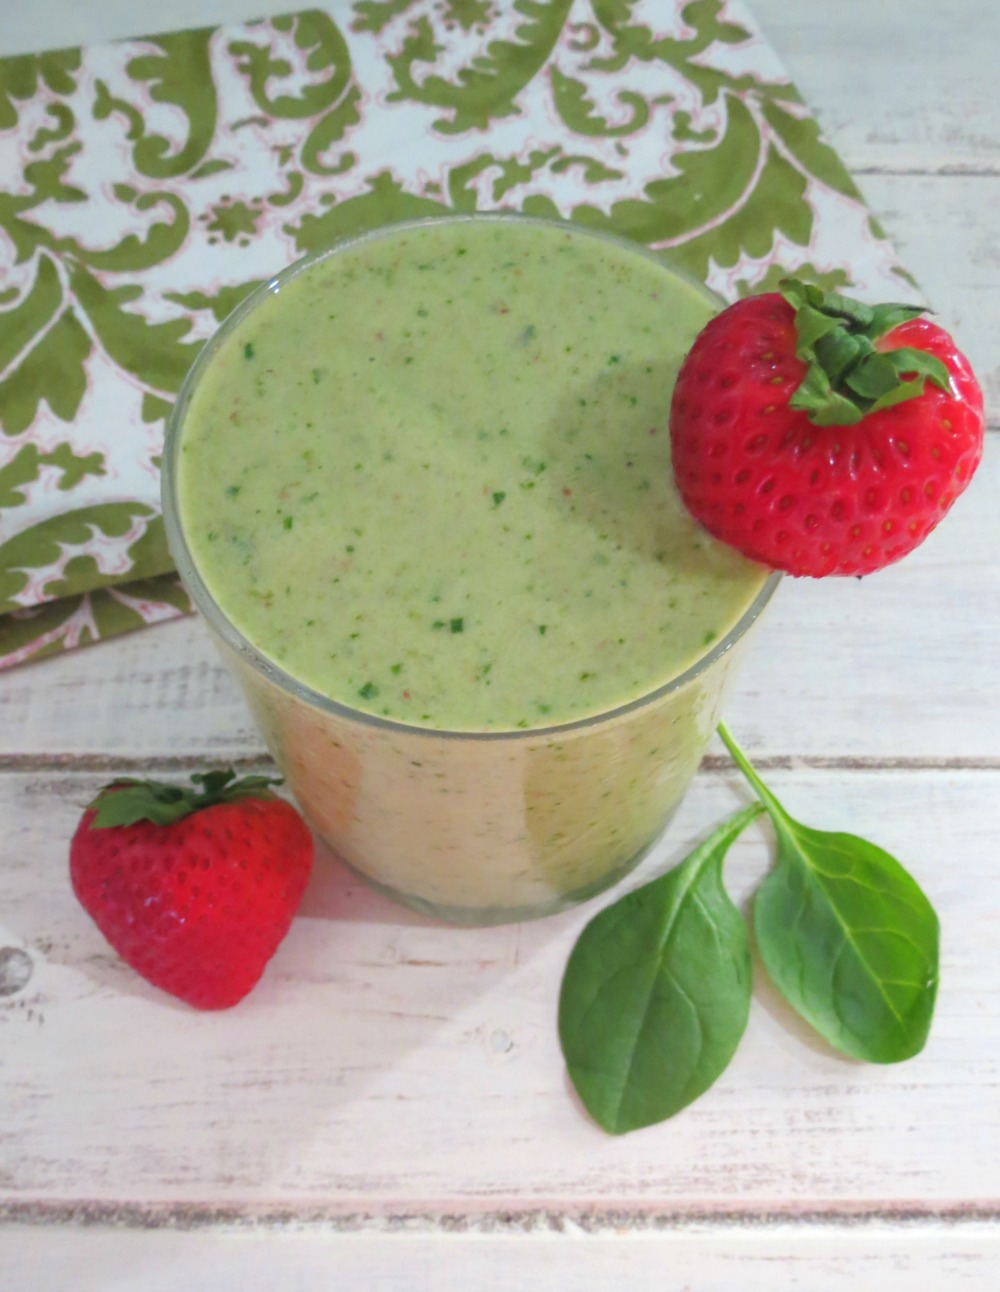 29. Debloating Smoothie